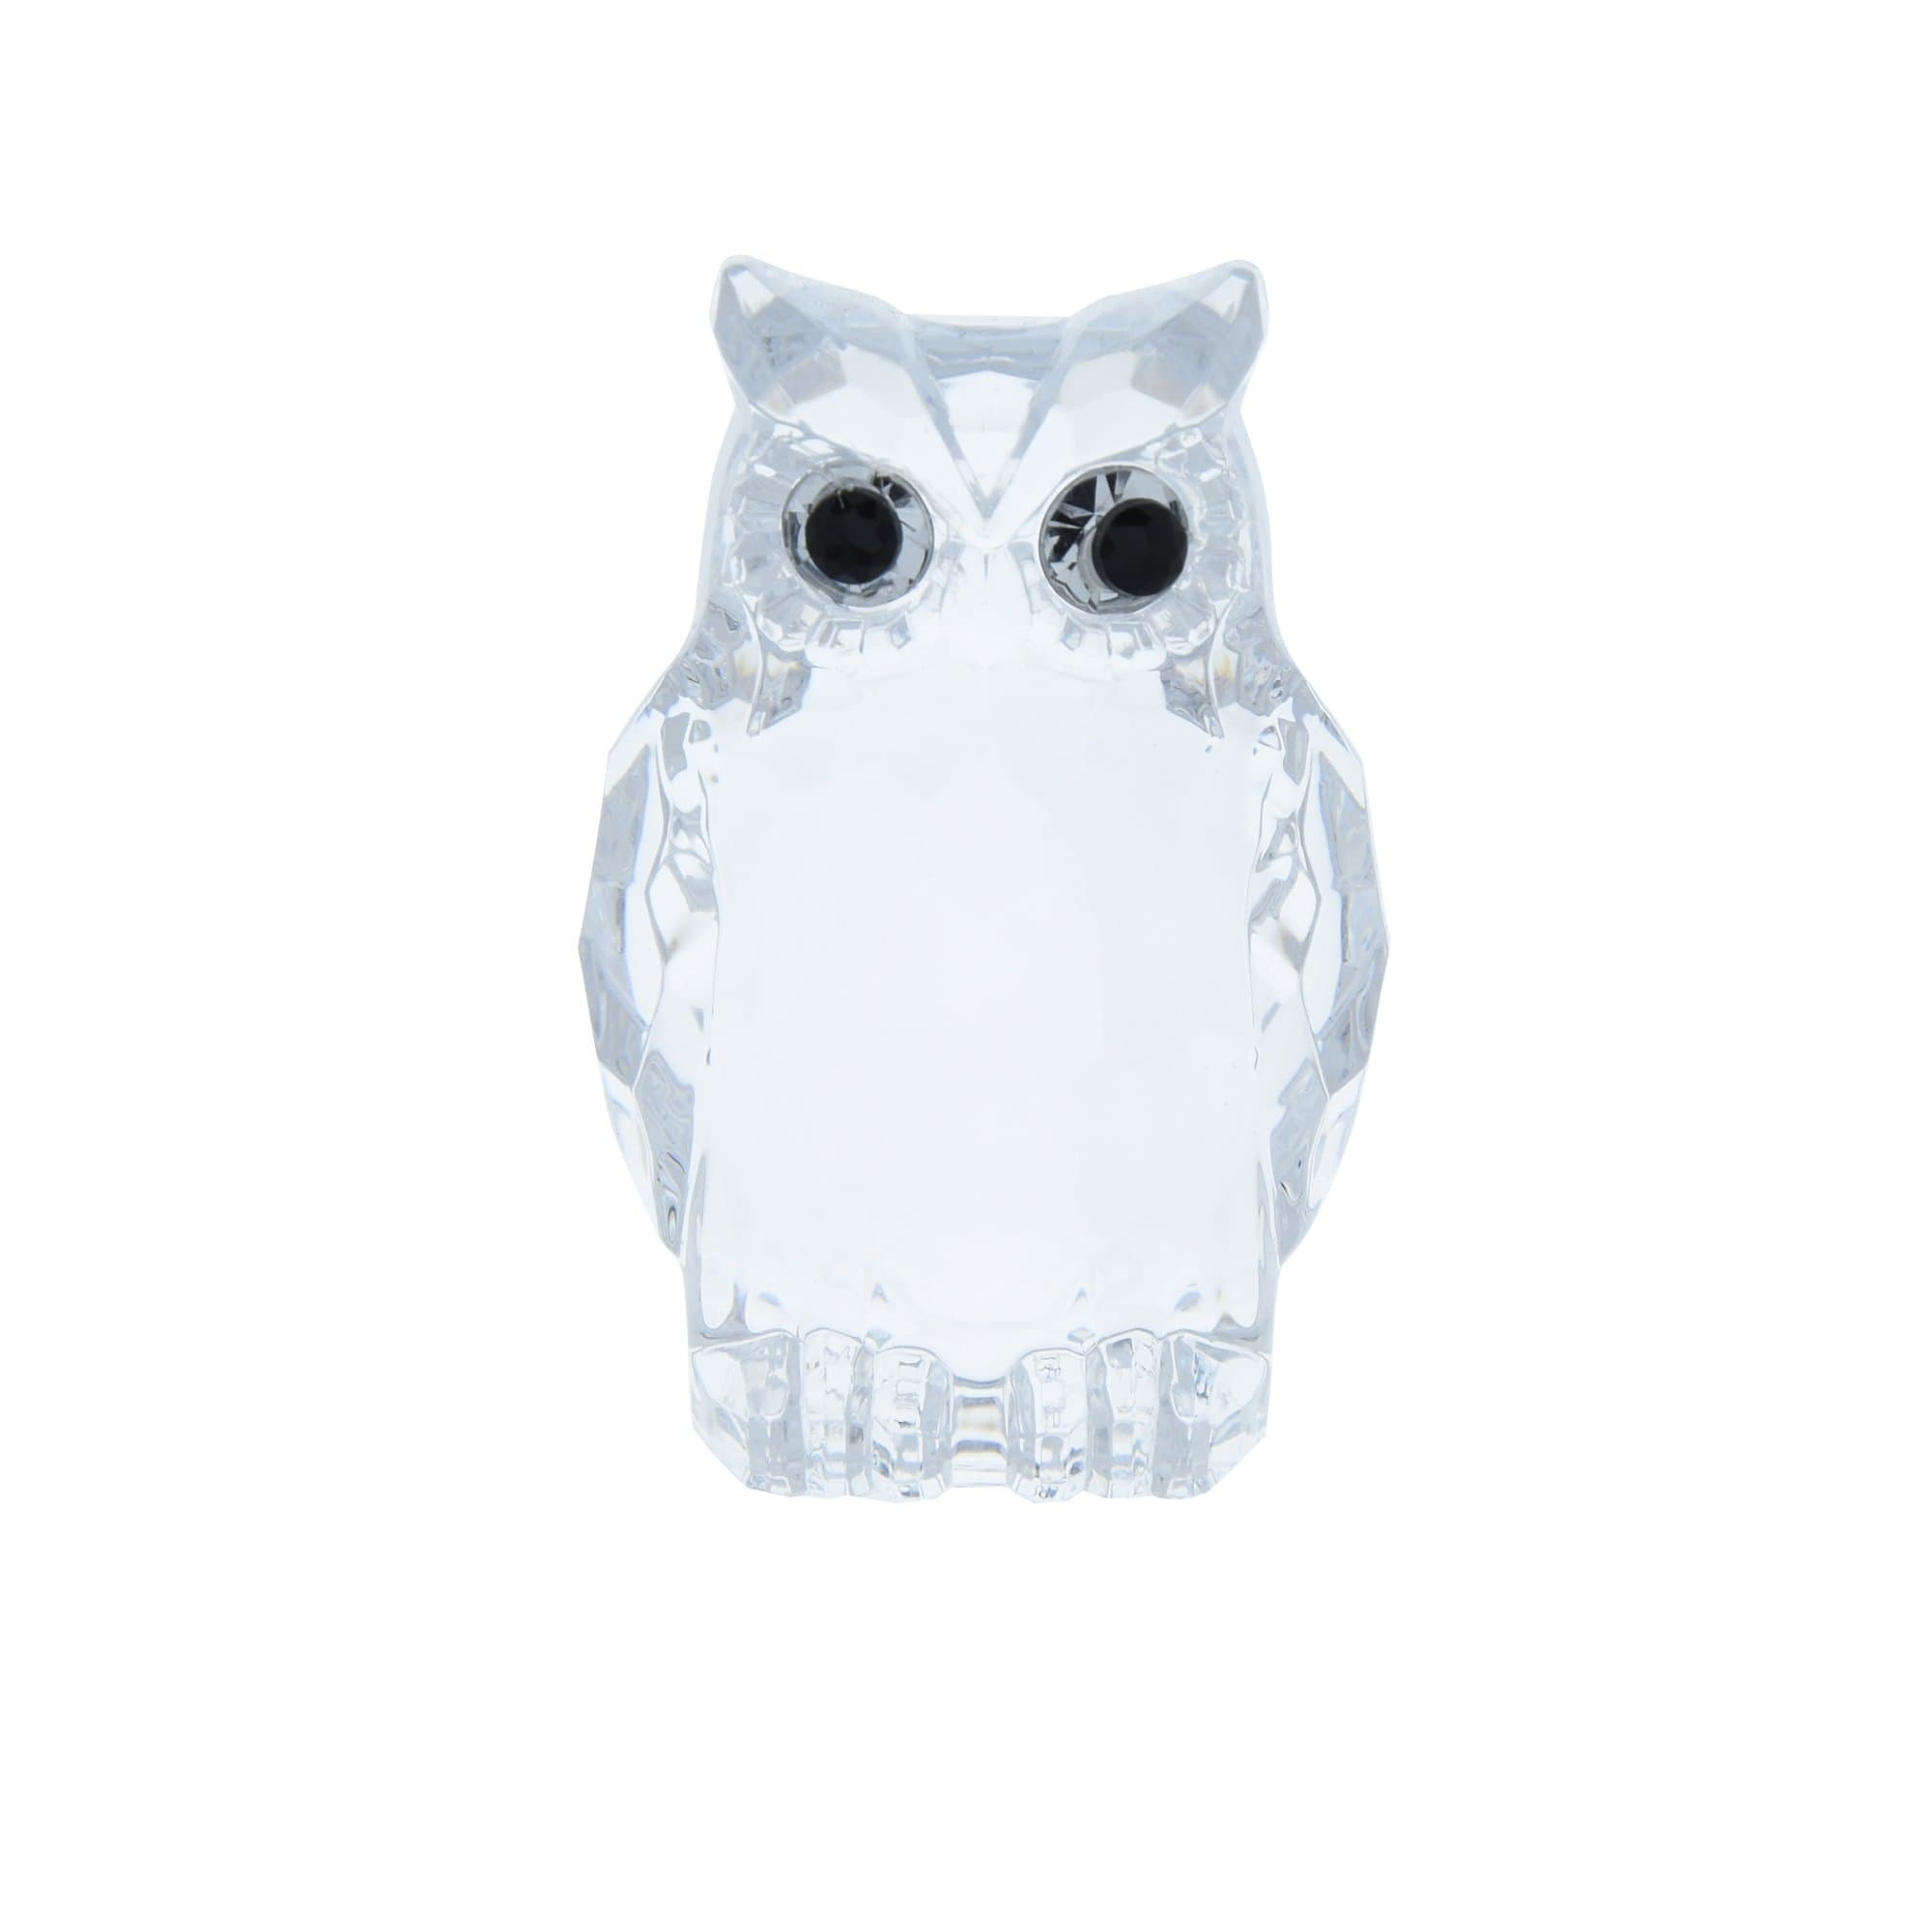 Candlelight Home Animals & Insects Owl Ornament Small Clear 6.5cm 12PK